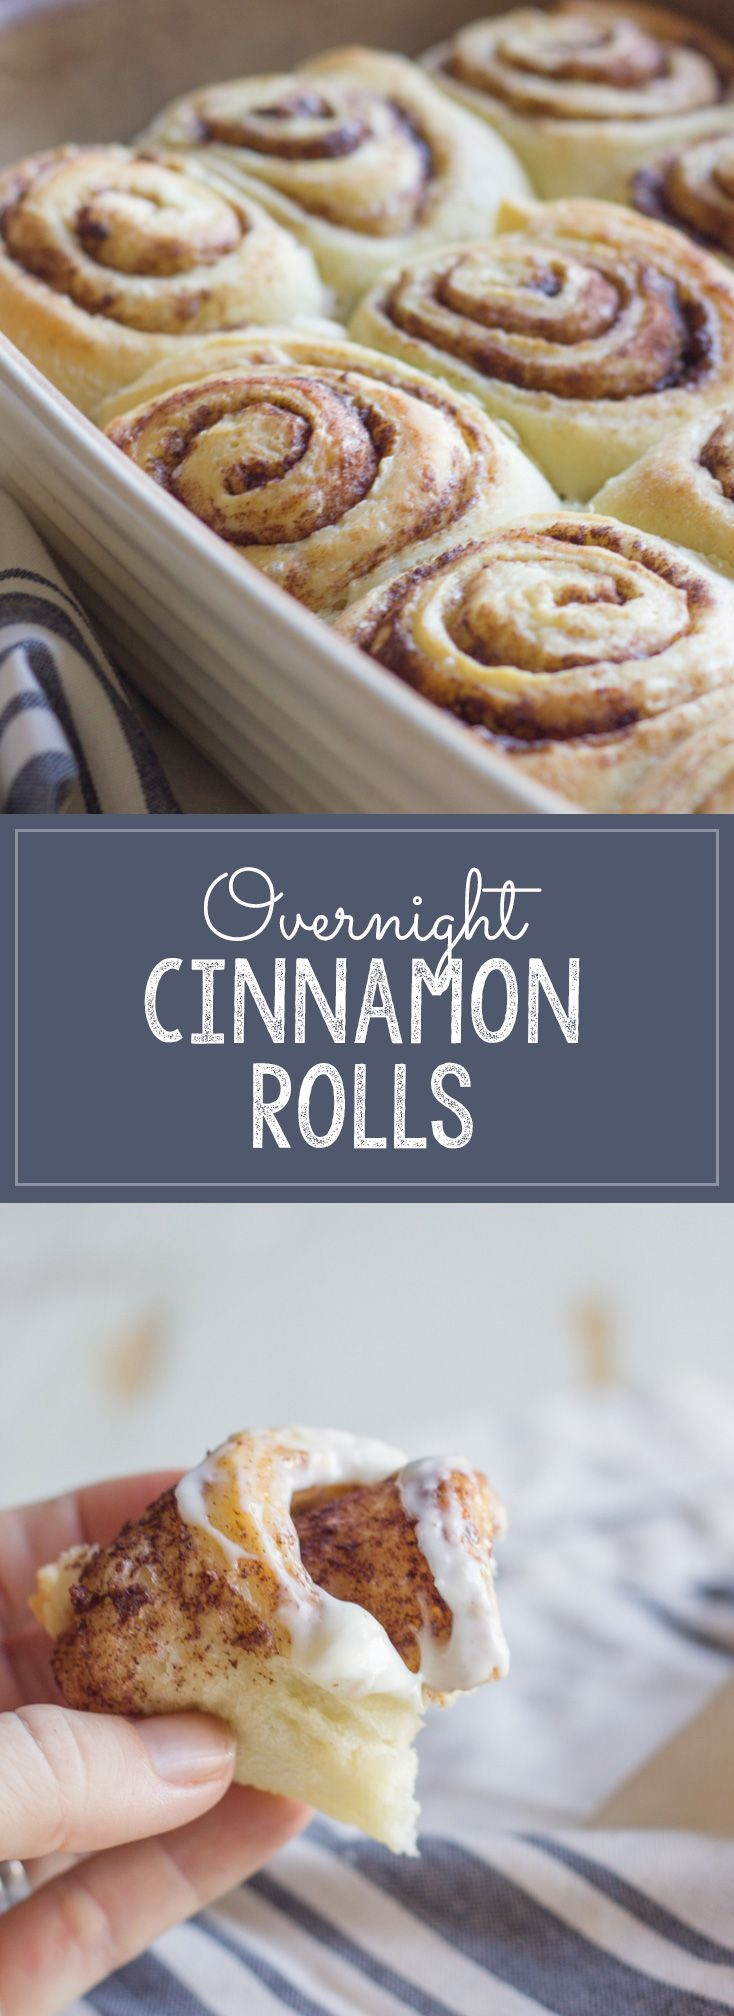 how to make cinnamon roll dough the night before